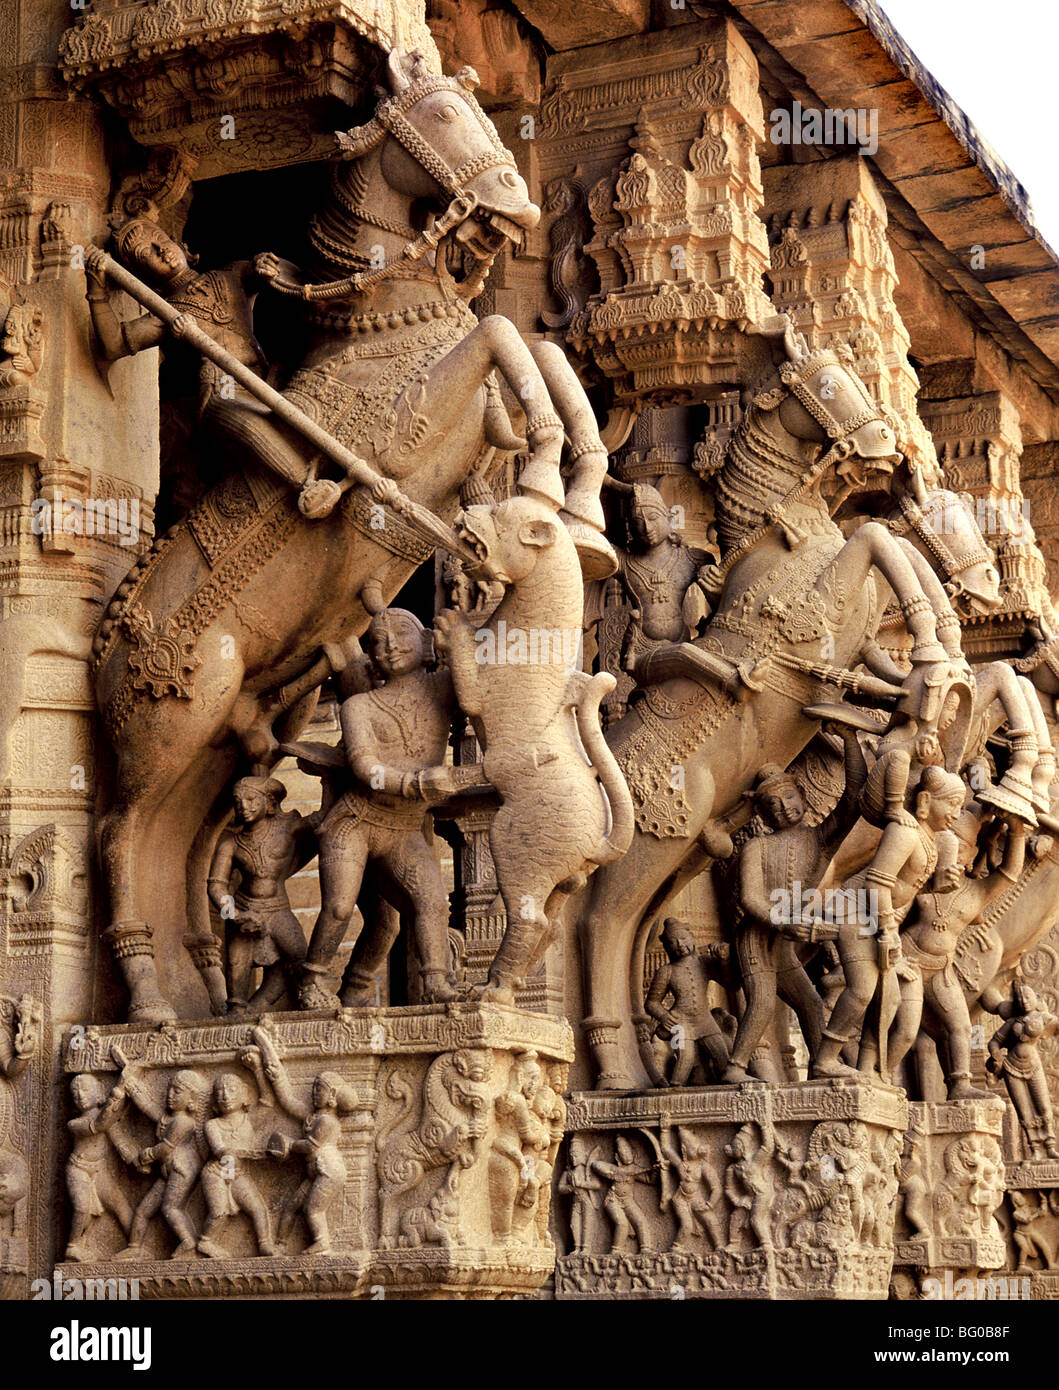 Detail of the pillared hall with horses from Srirangam temple, also known as Thiruvarangam, Tamil Nadu, India, Asia - Stock Image